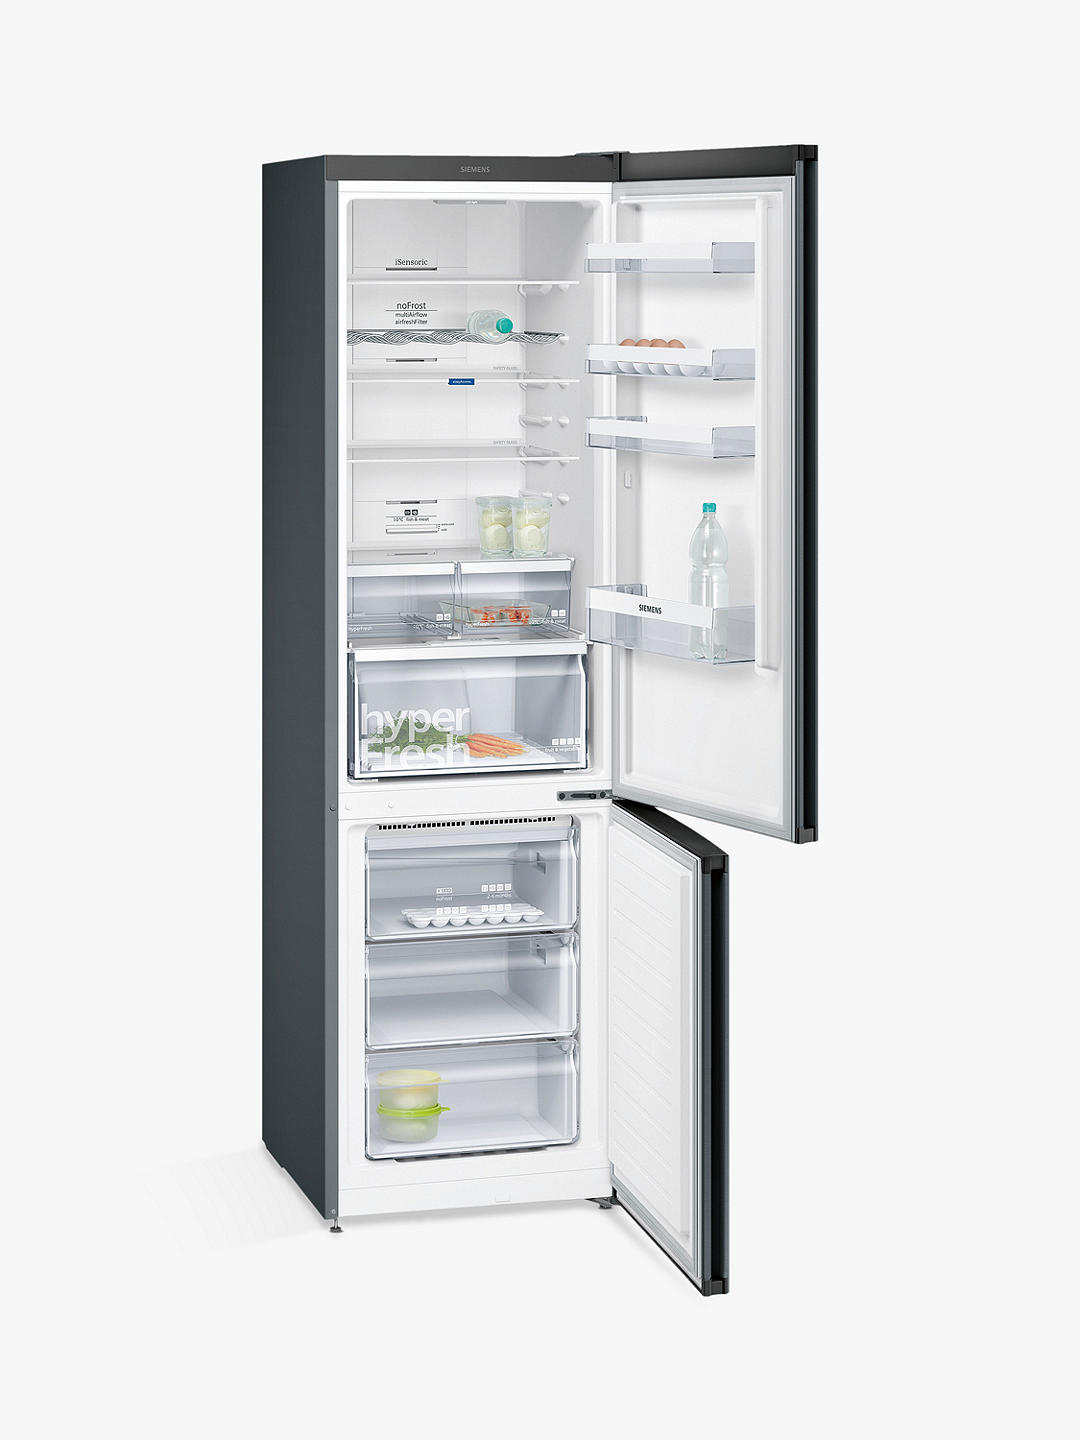 Buy Siemens KG39NXB35G Freestanding Frost Free 70/30 Fridge Freezer, A++ Energy Rating, 60cm Wide, Black Steel Online at johnlewis.com